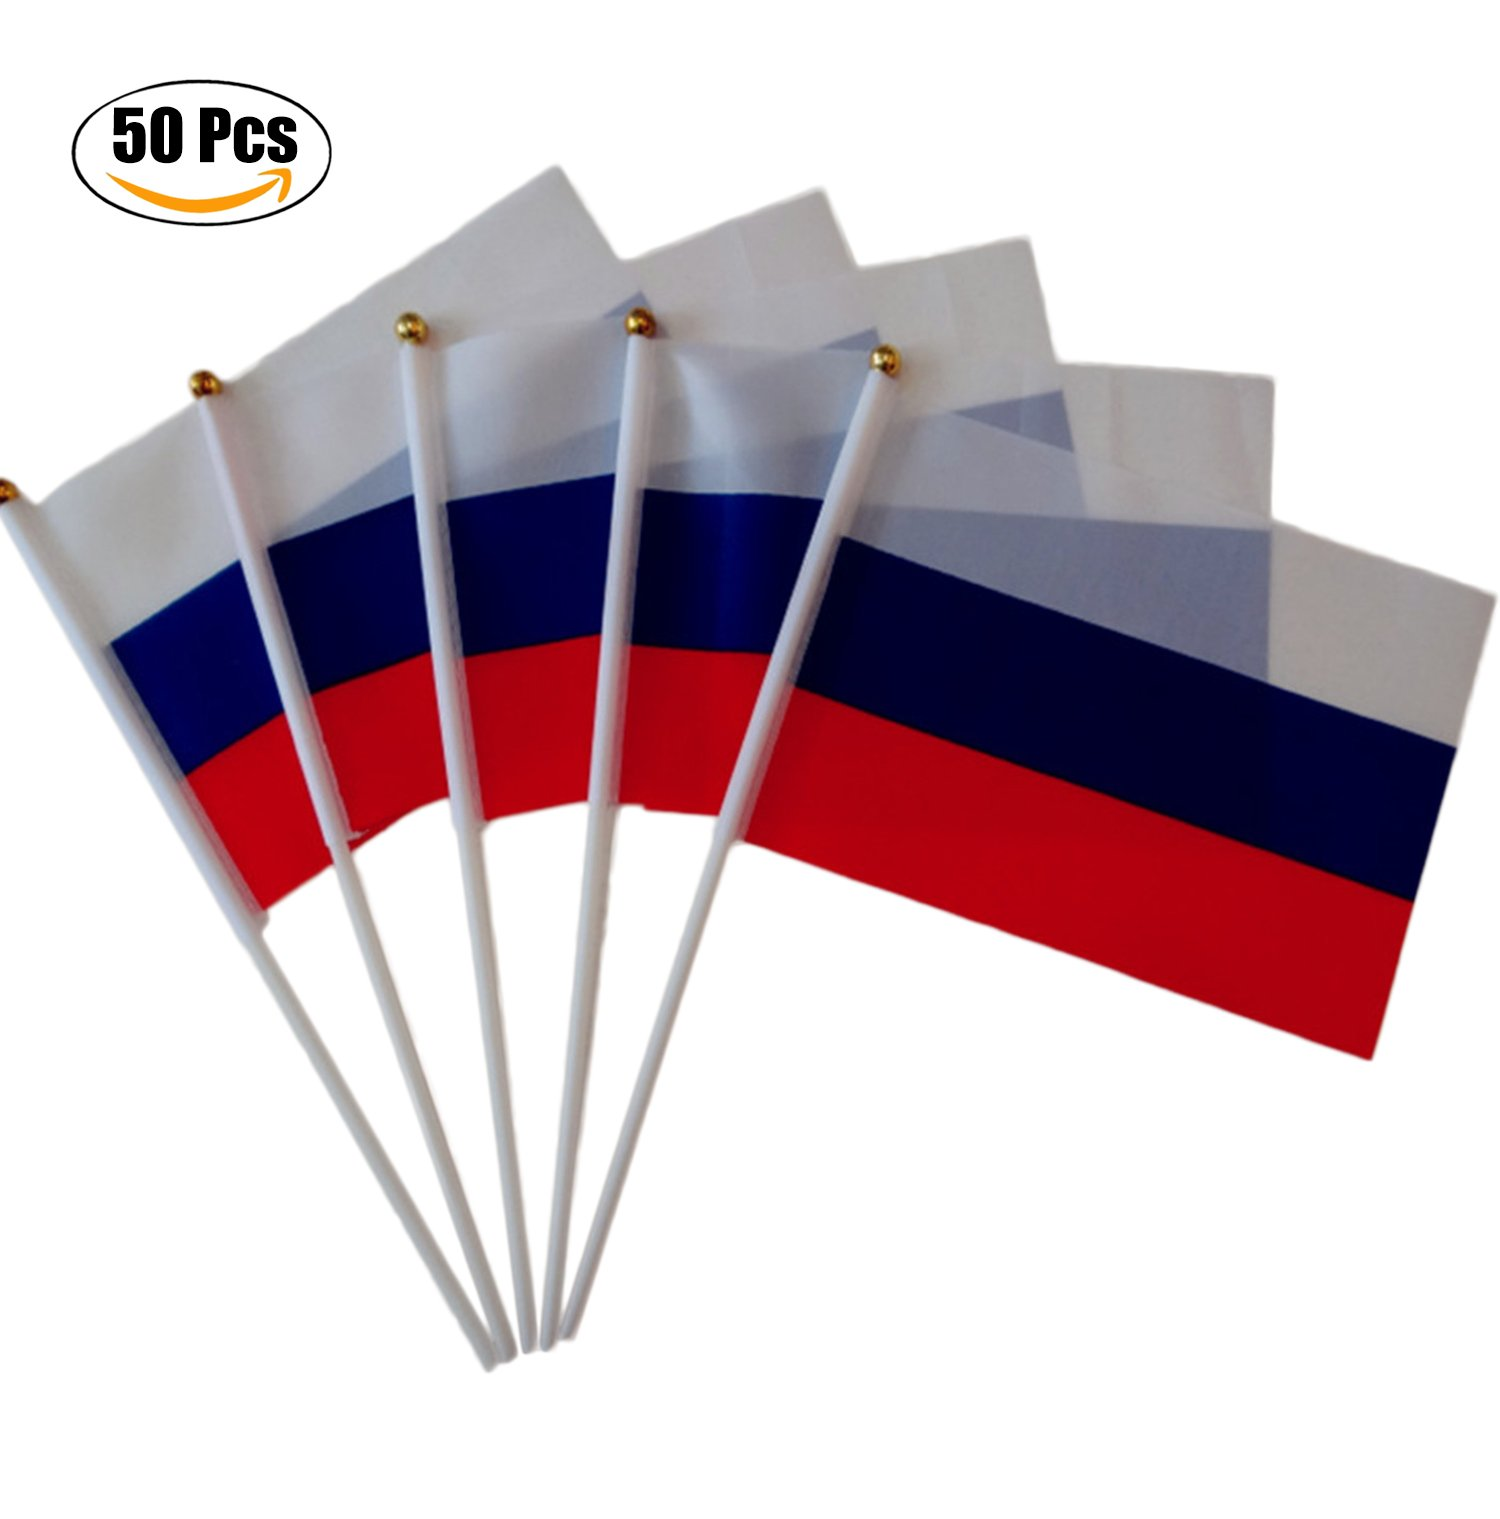 Funpa 50PCS Stick Flag Mini Flag Plastic Poles National Flag Handheld Flag for Party or Events